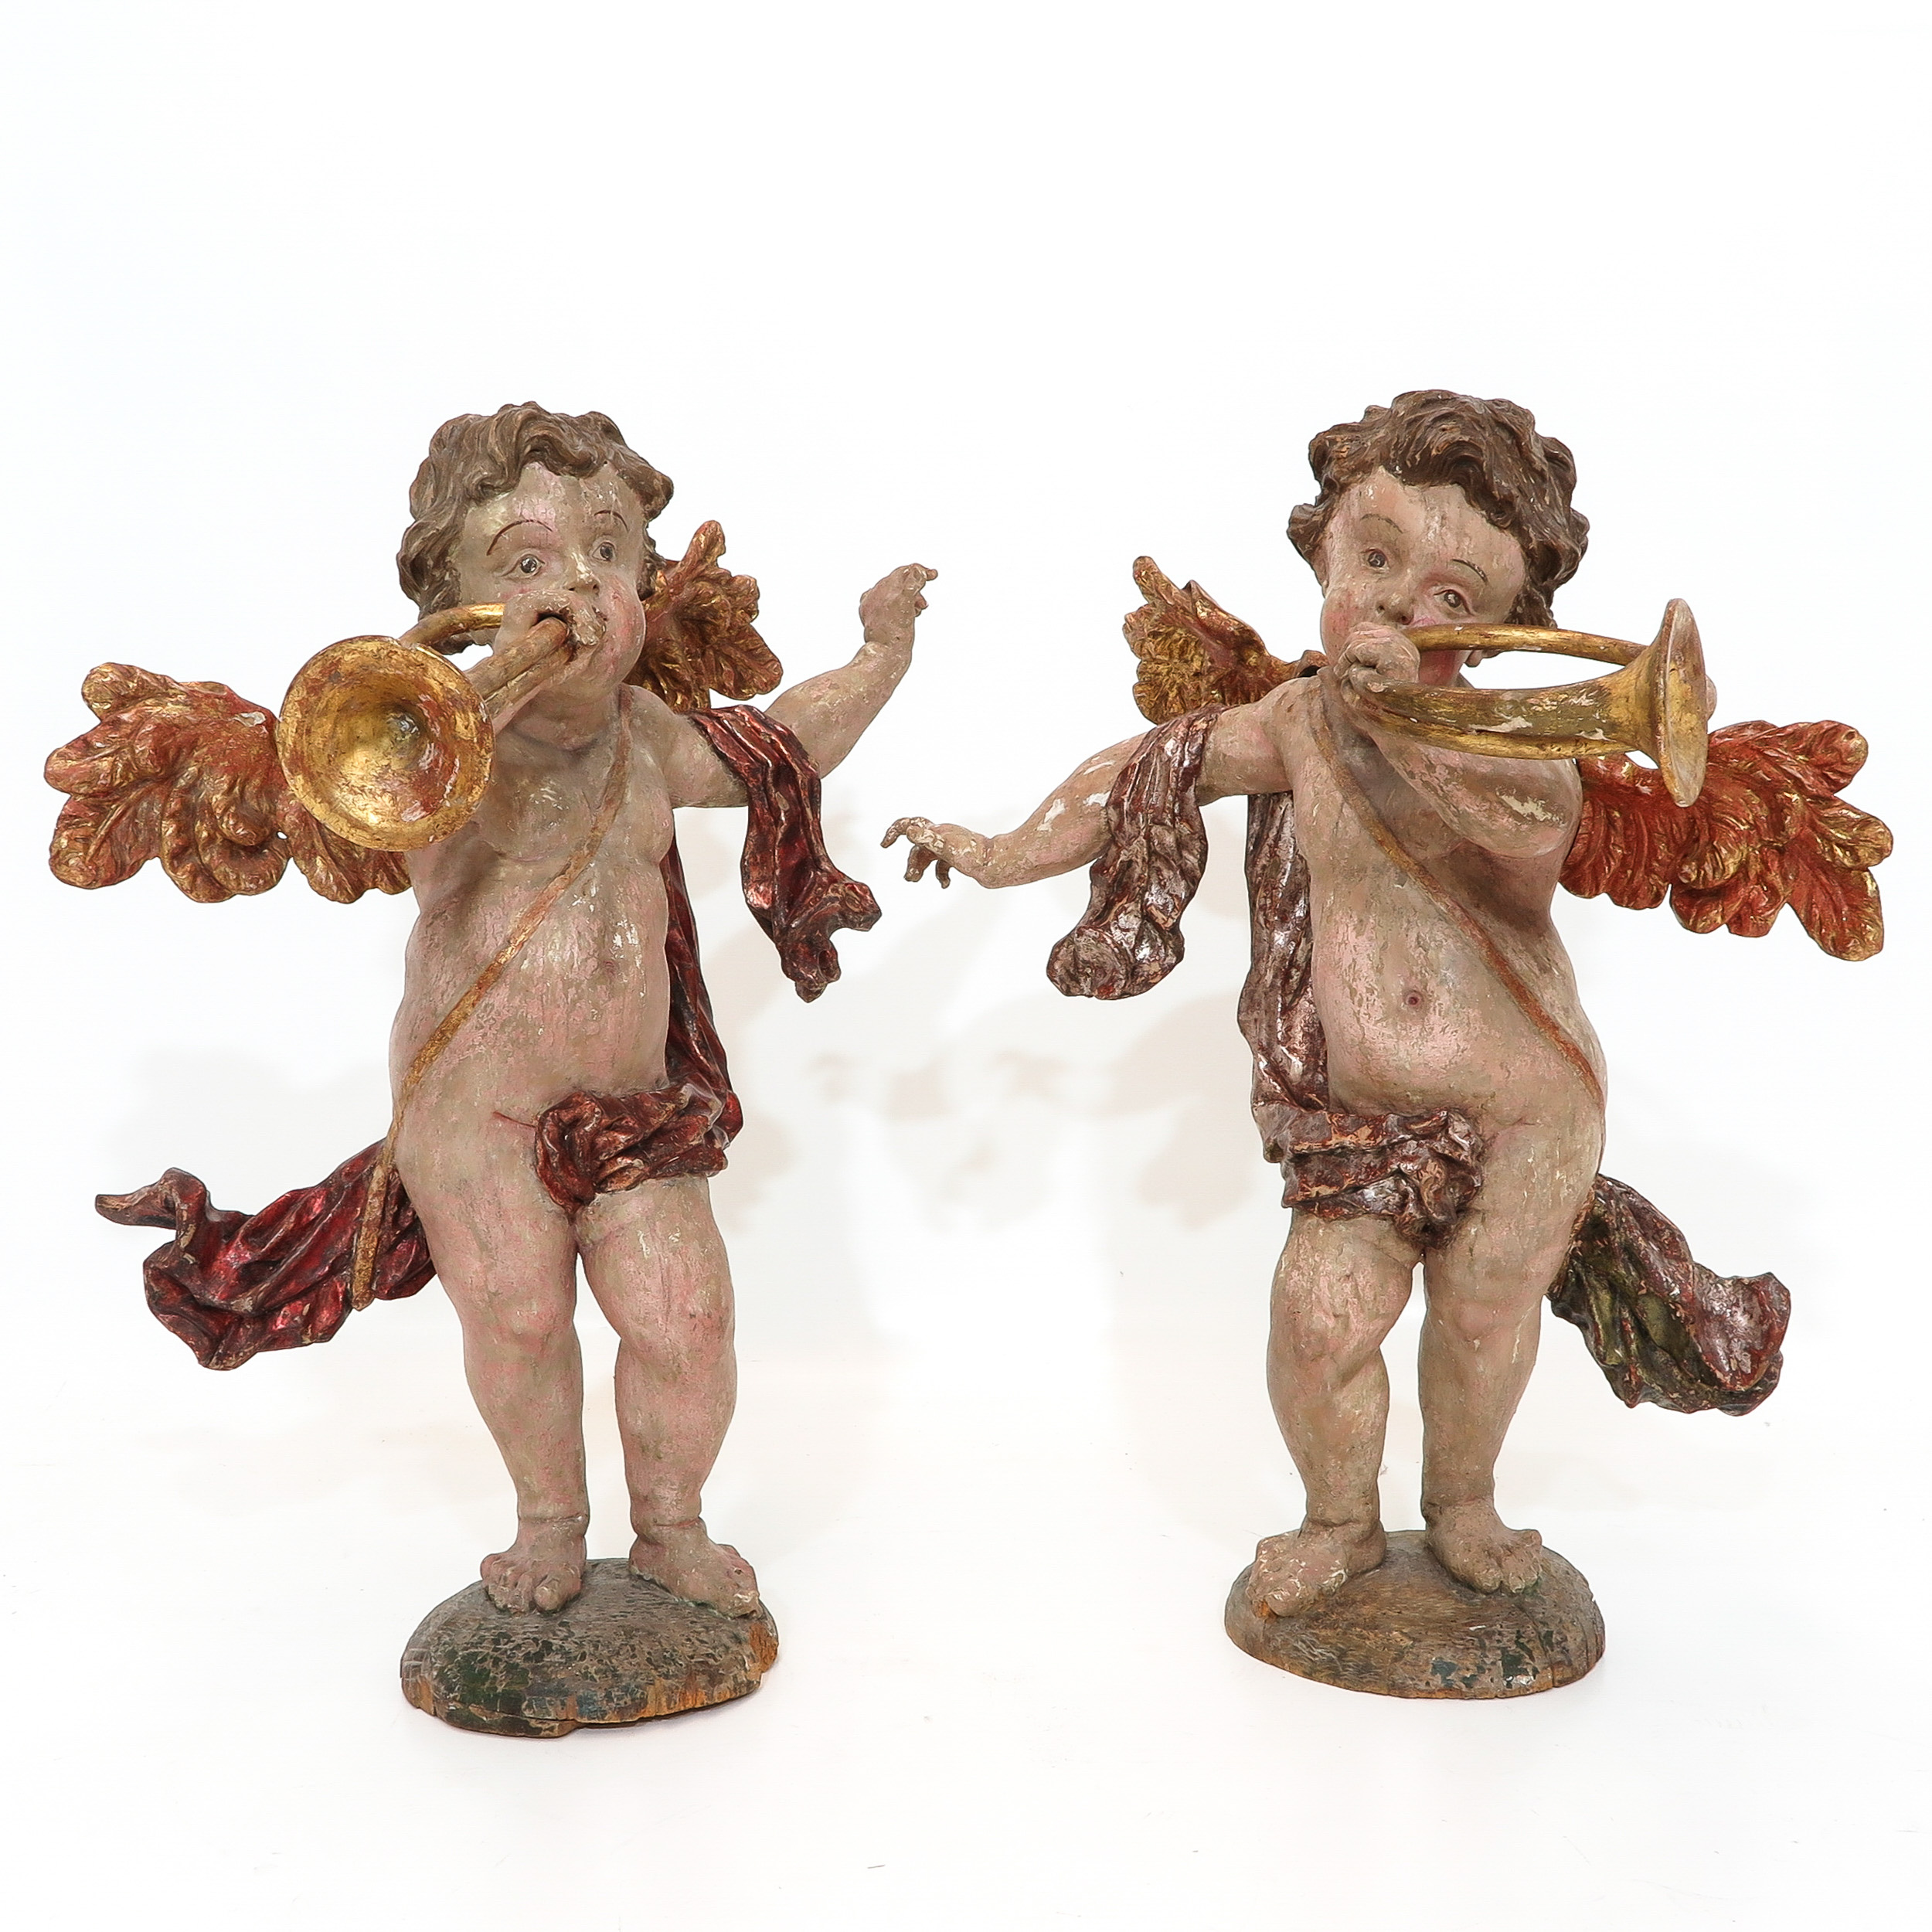 A Very Rare Pair of 18th Century Baroque Angels